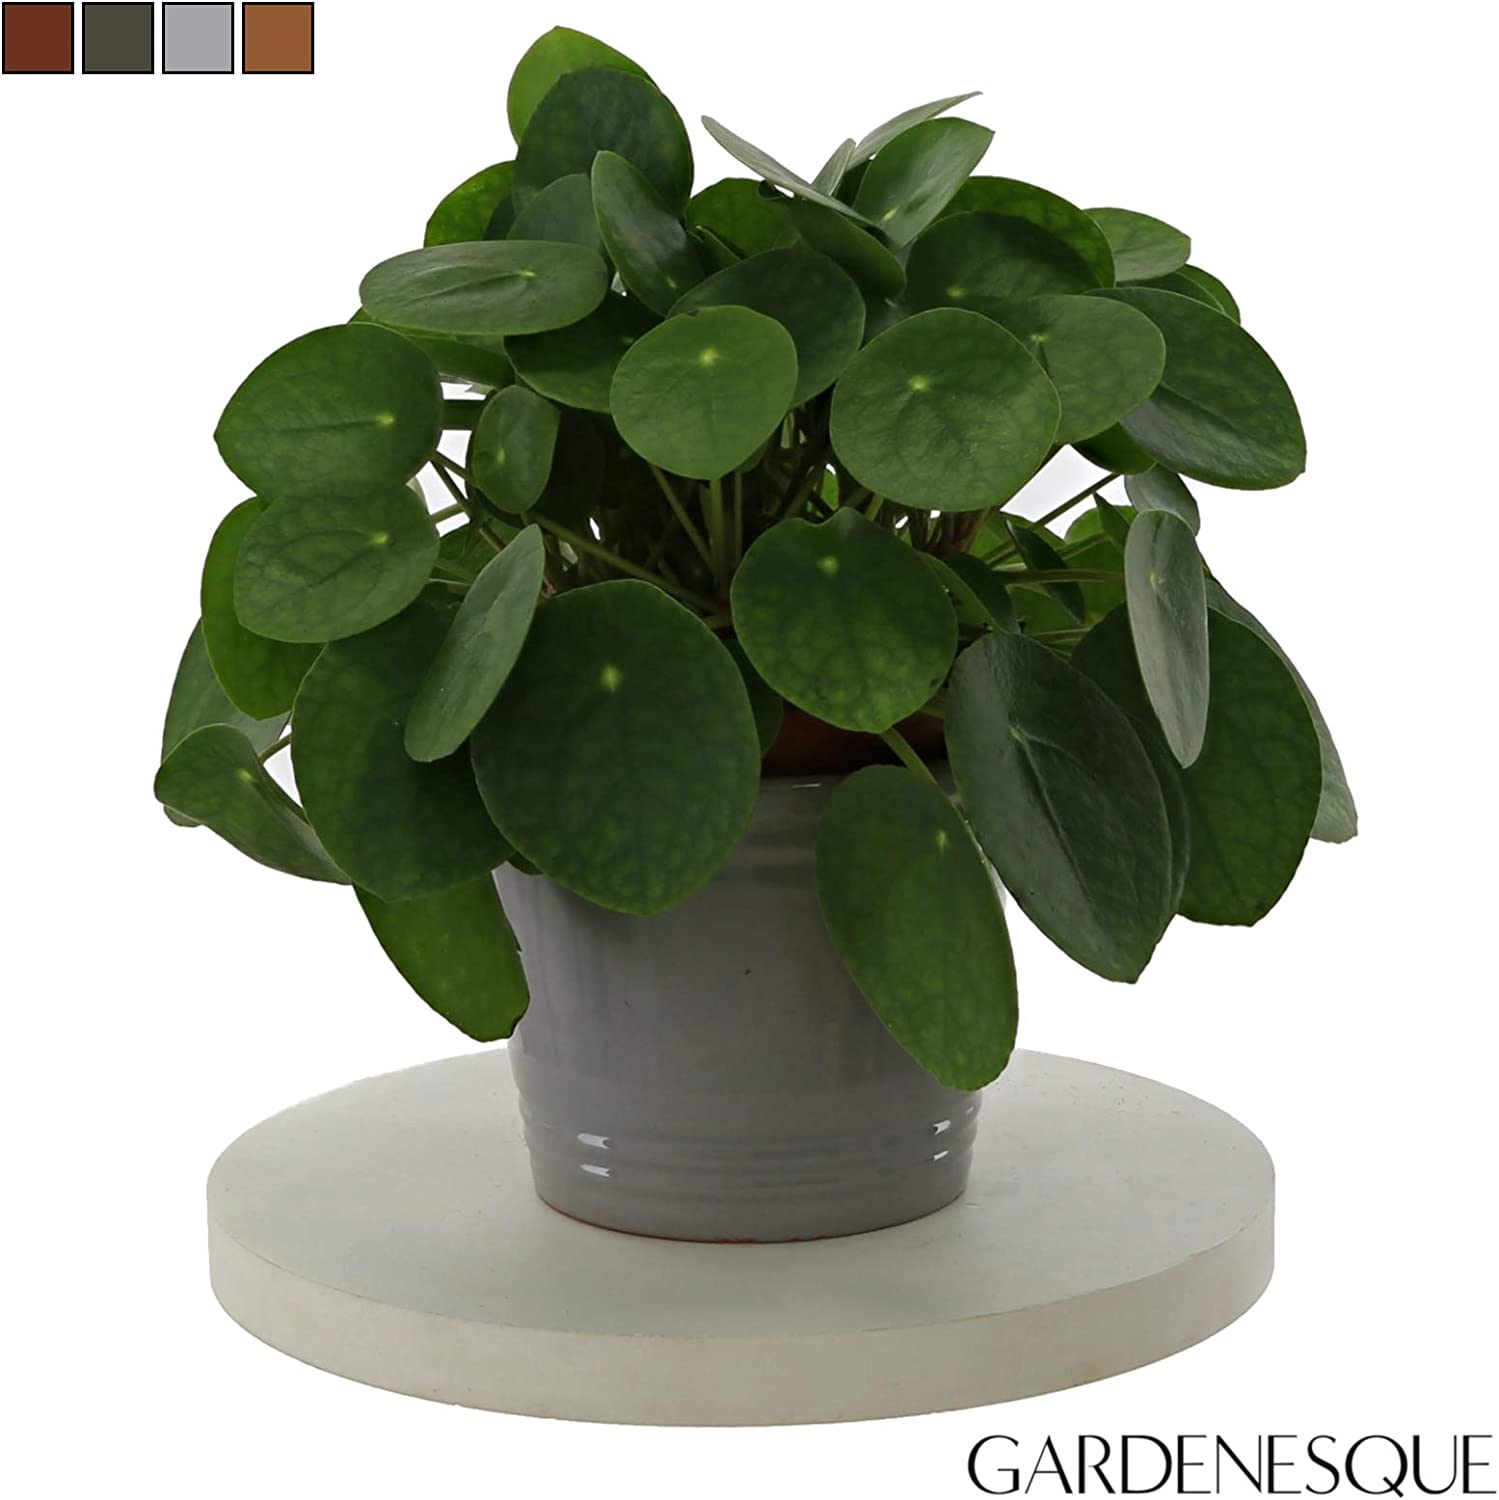 Pilea Peperomioides Indoor Houseplant Ancient Effect Ceramic Pot Large Chinese Money Plant